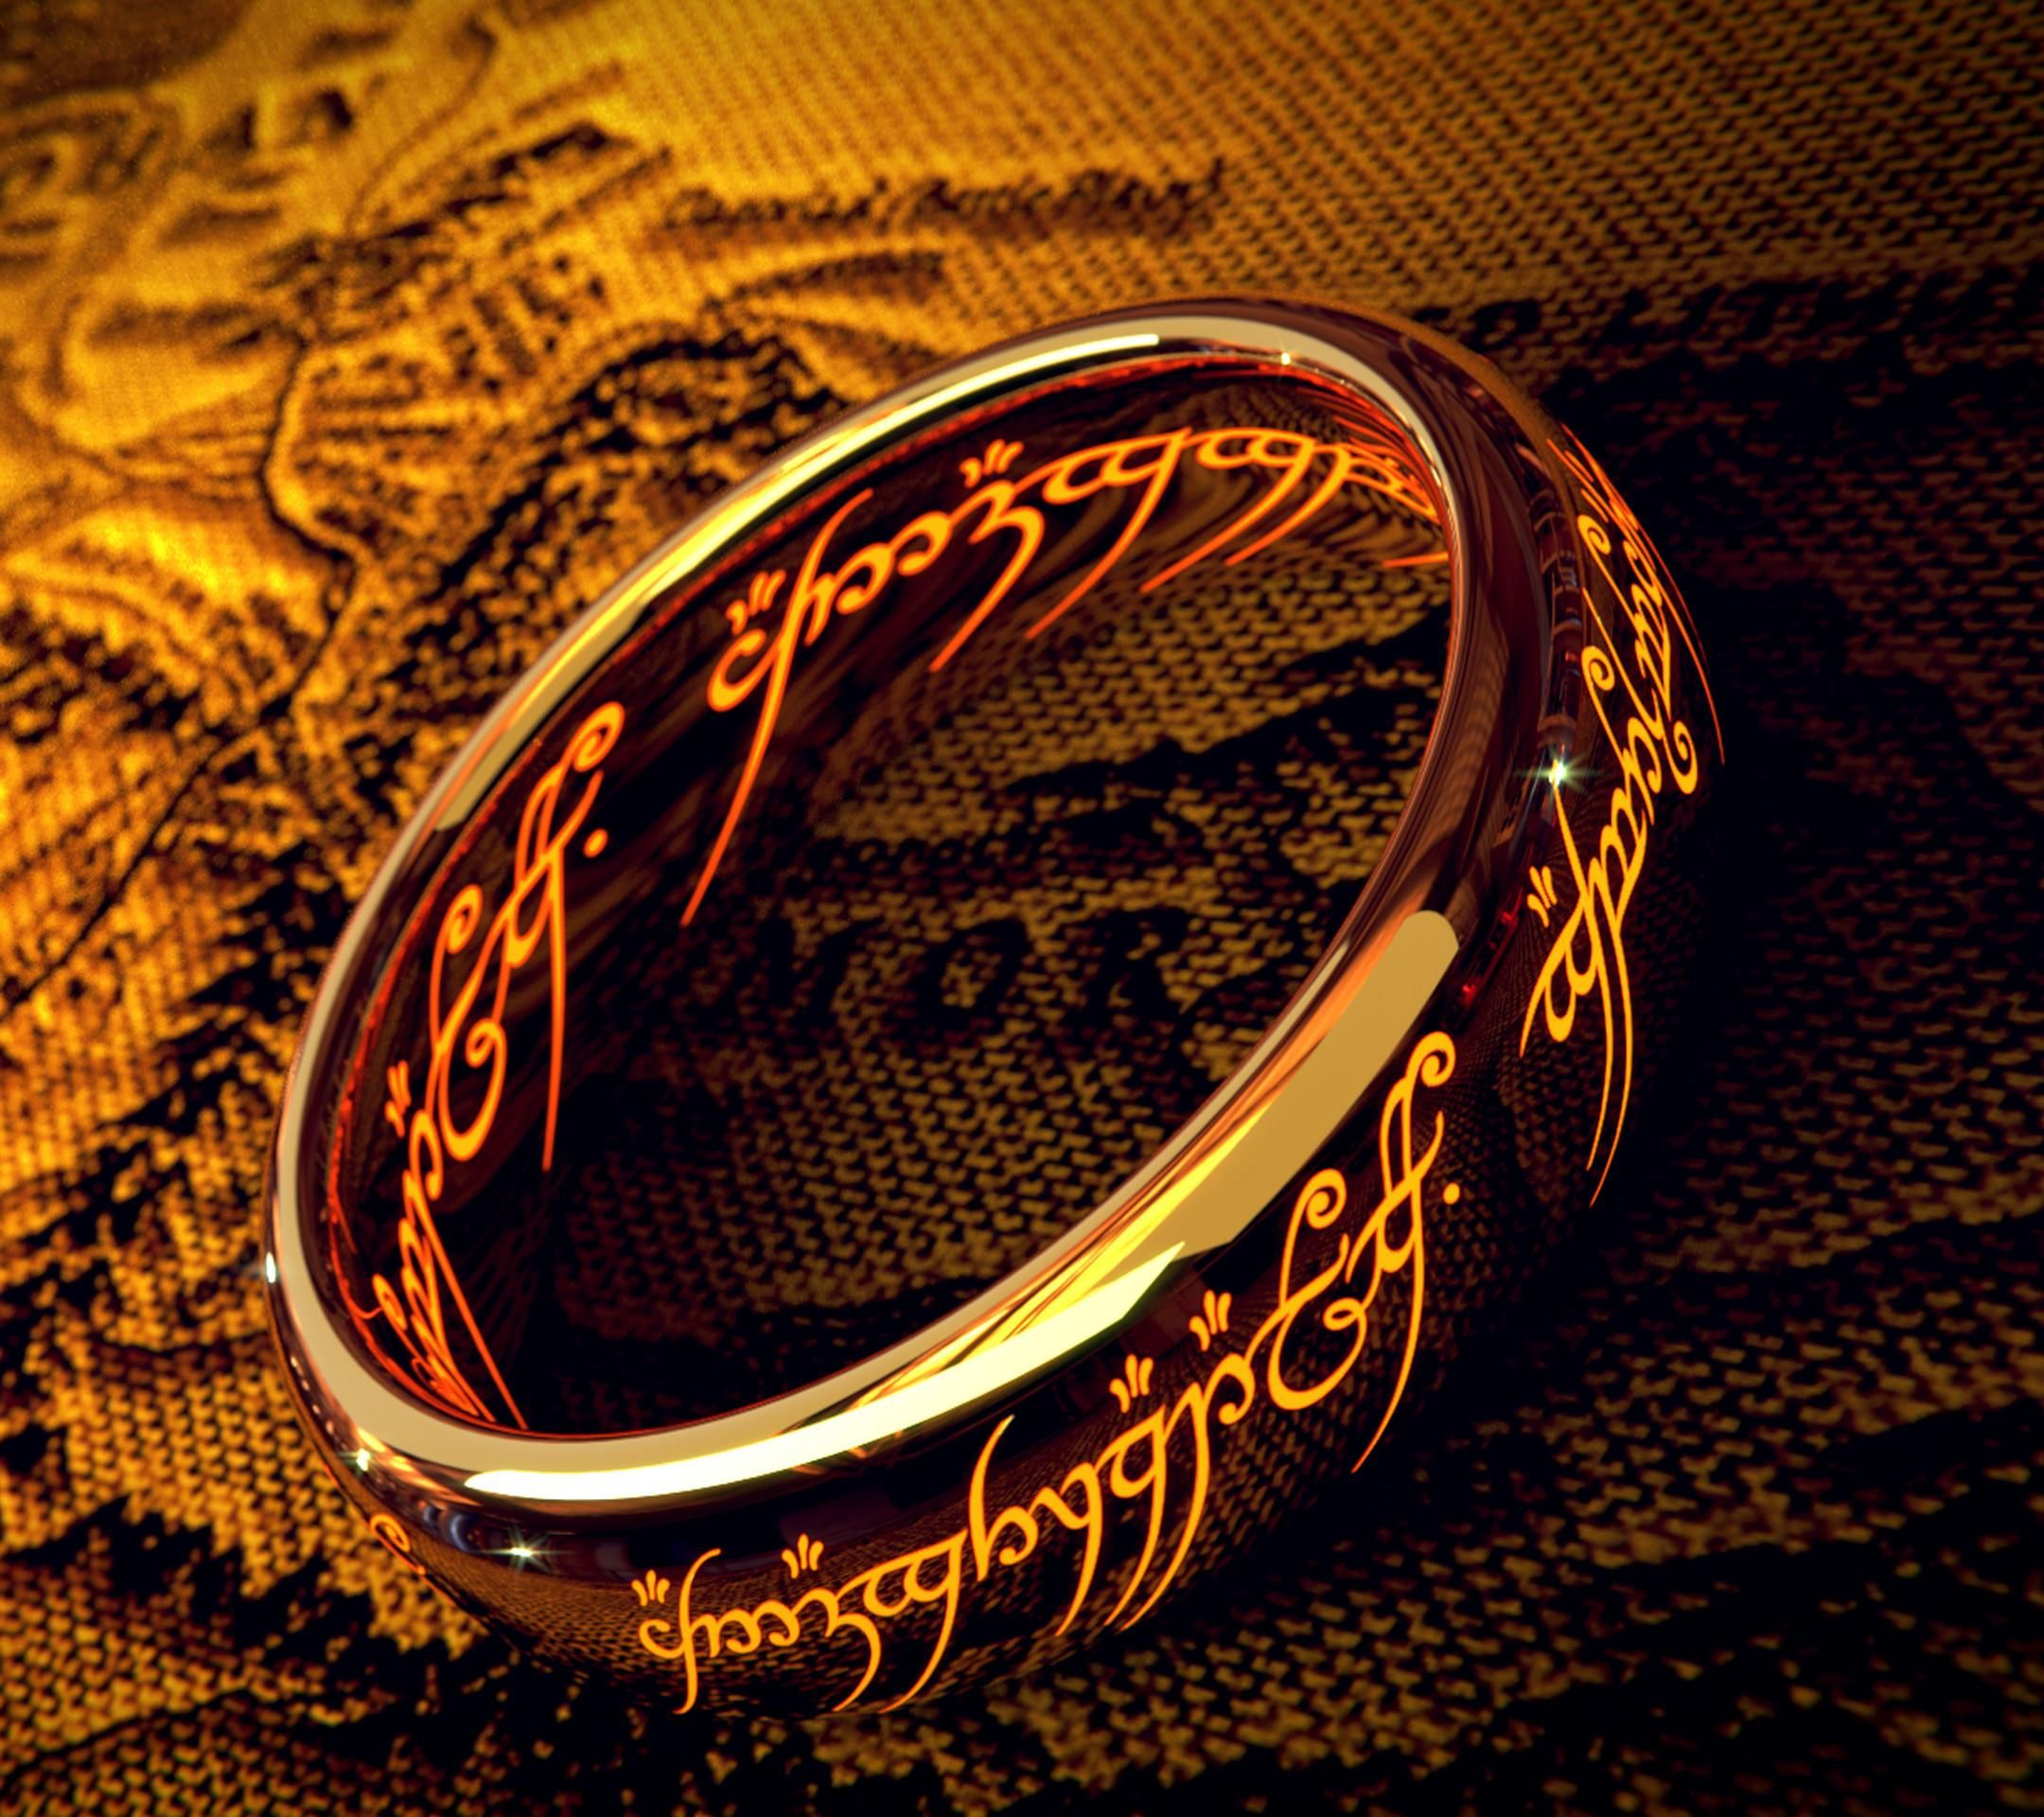 One Ring To Rule Them All Quote Page Number Pin De Leah Marie Em Lord Of The Rings O Hobbit Senhor Dos Aneis Hobbit